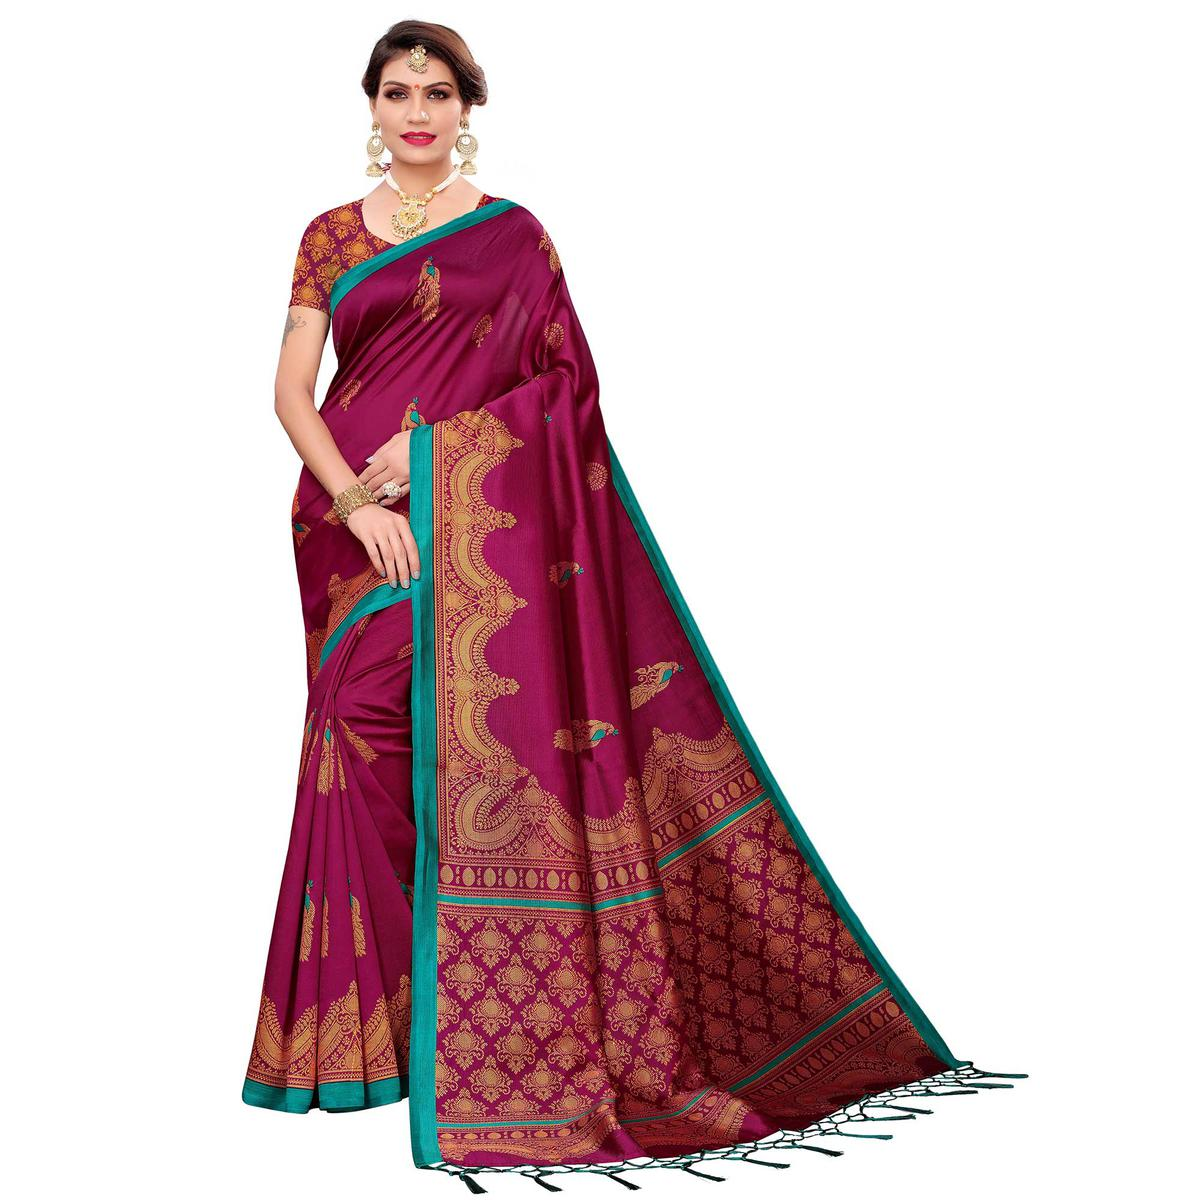 Opulent Dark Magenta Pink Colored Festive Wear Art Silk Saree